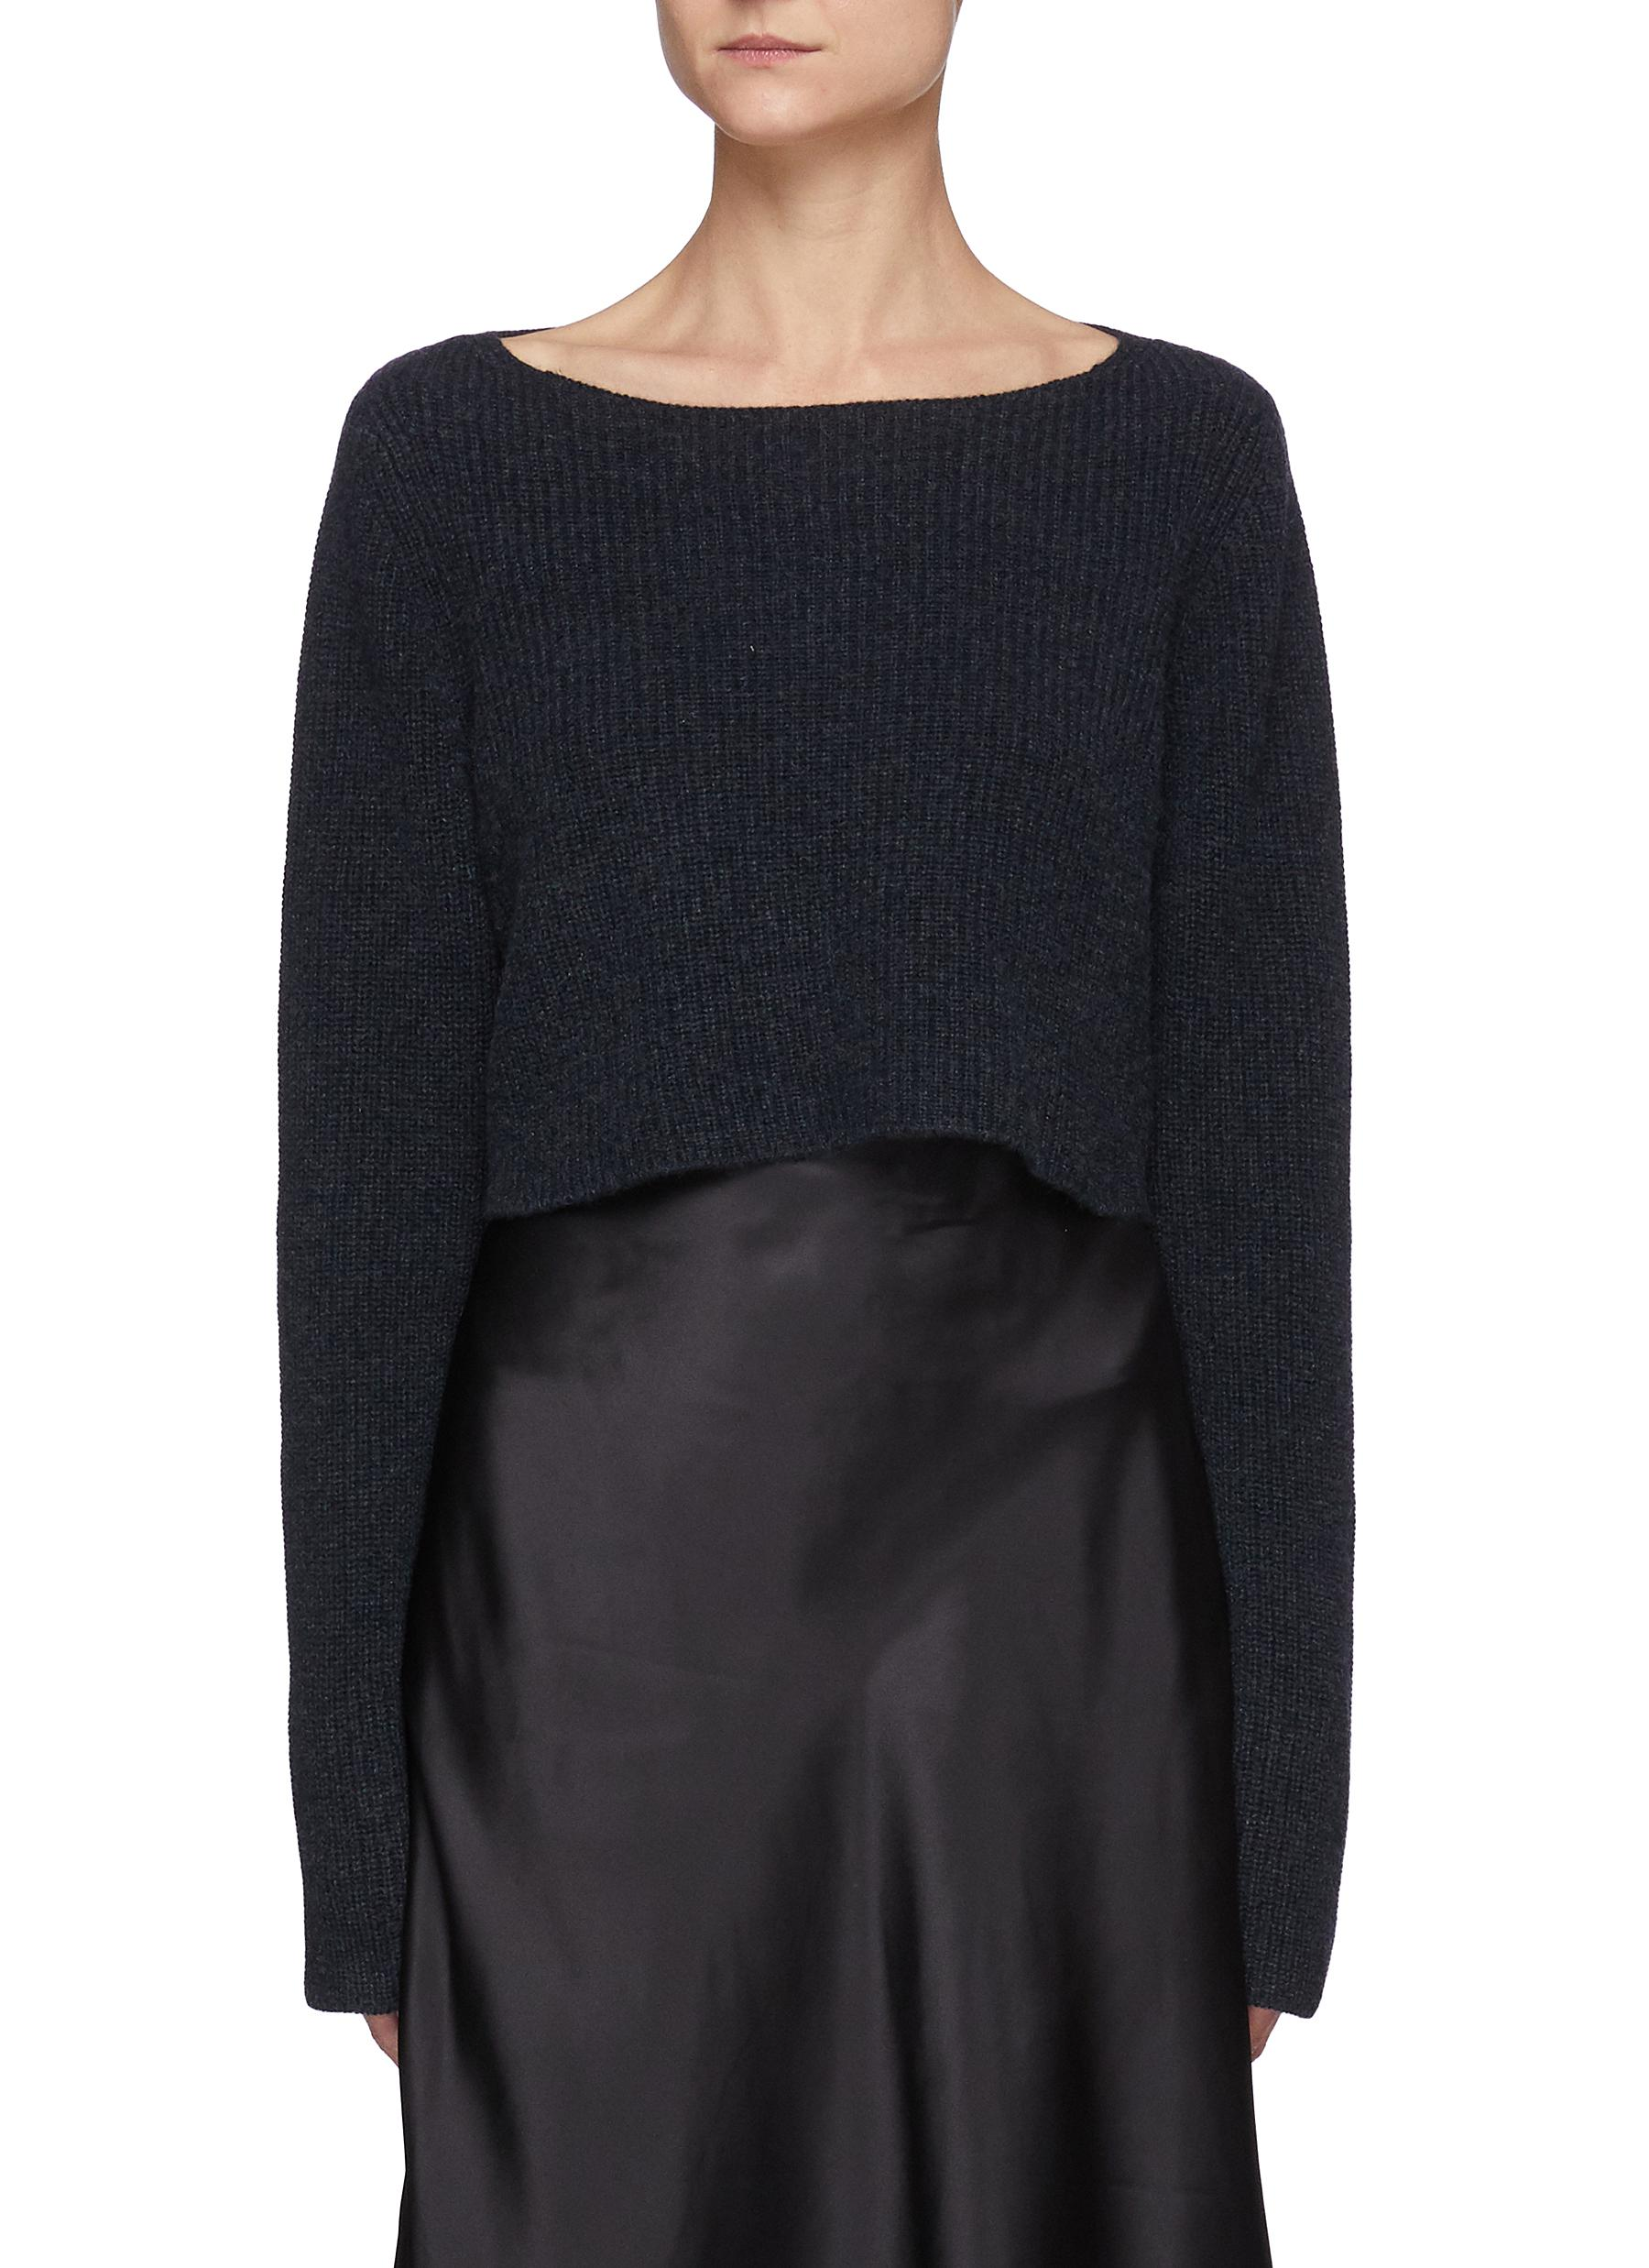 Cannes' Boat Neck Rib Cropped Sweater